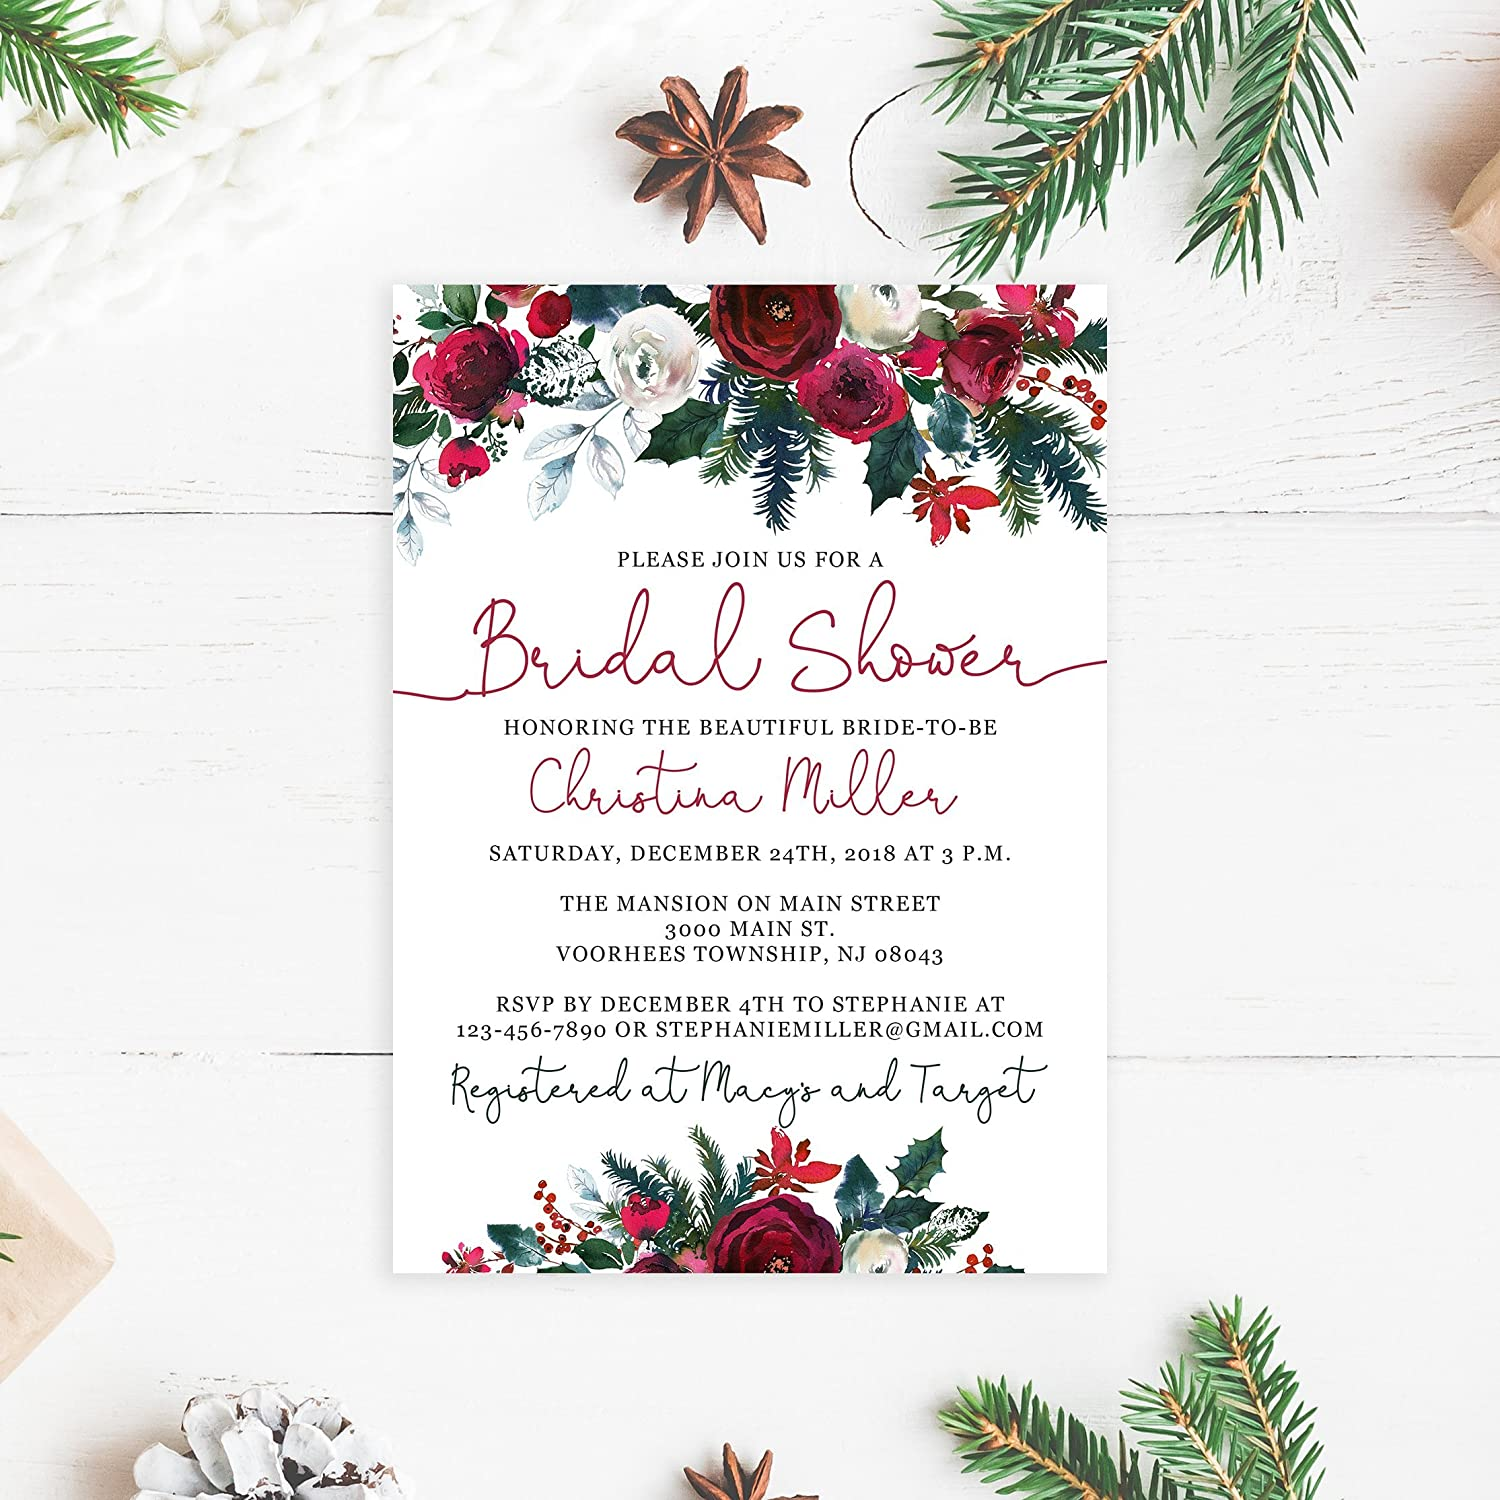 Amazon.com: Christmas Bridal Shower Invitations with White Envelopes ...